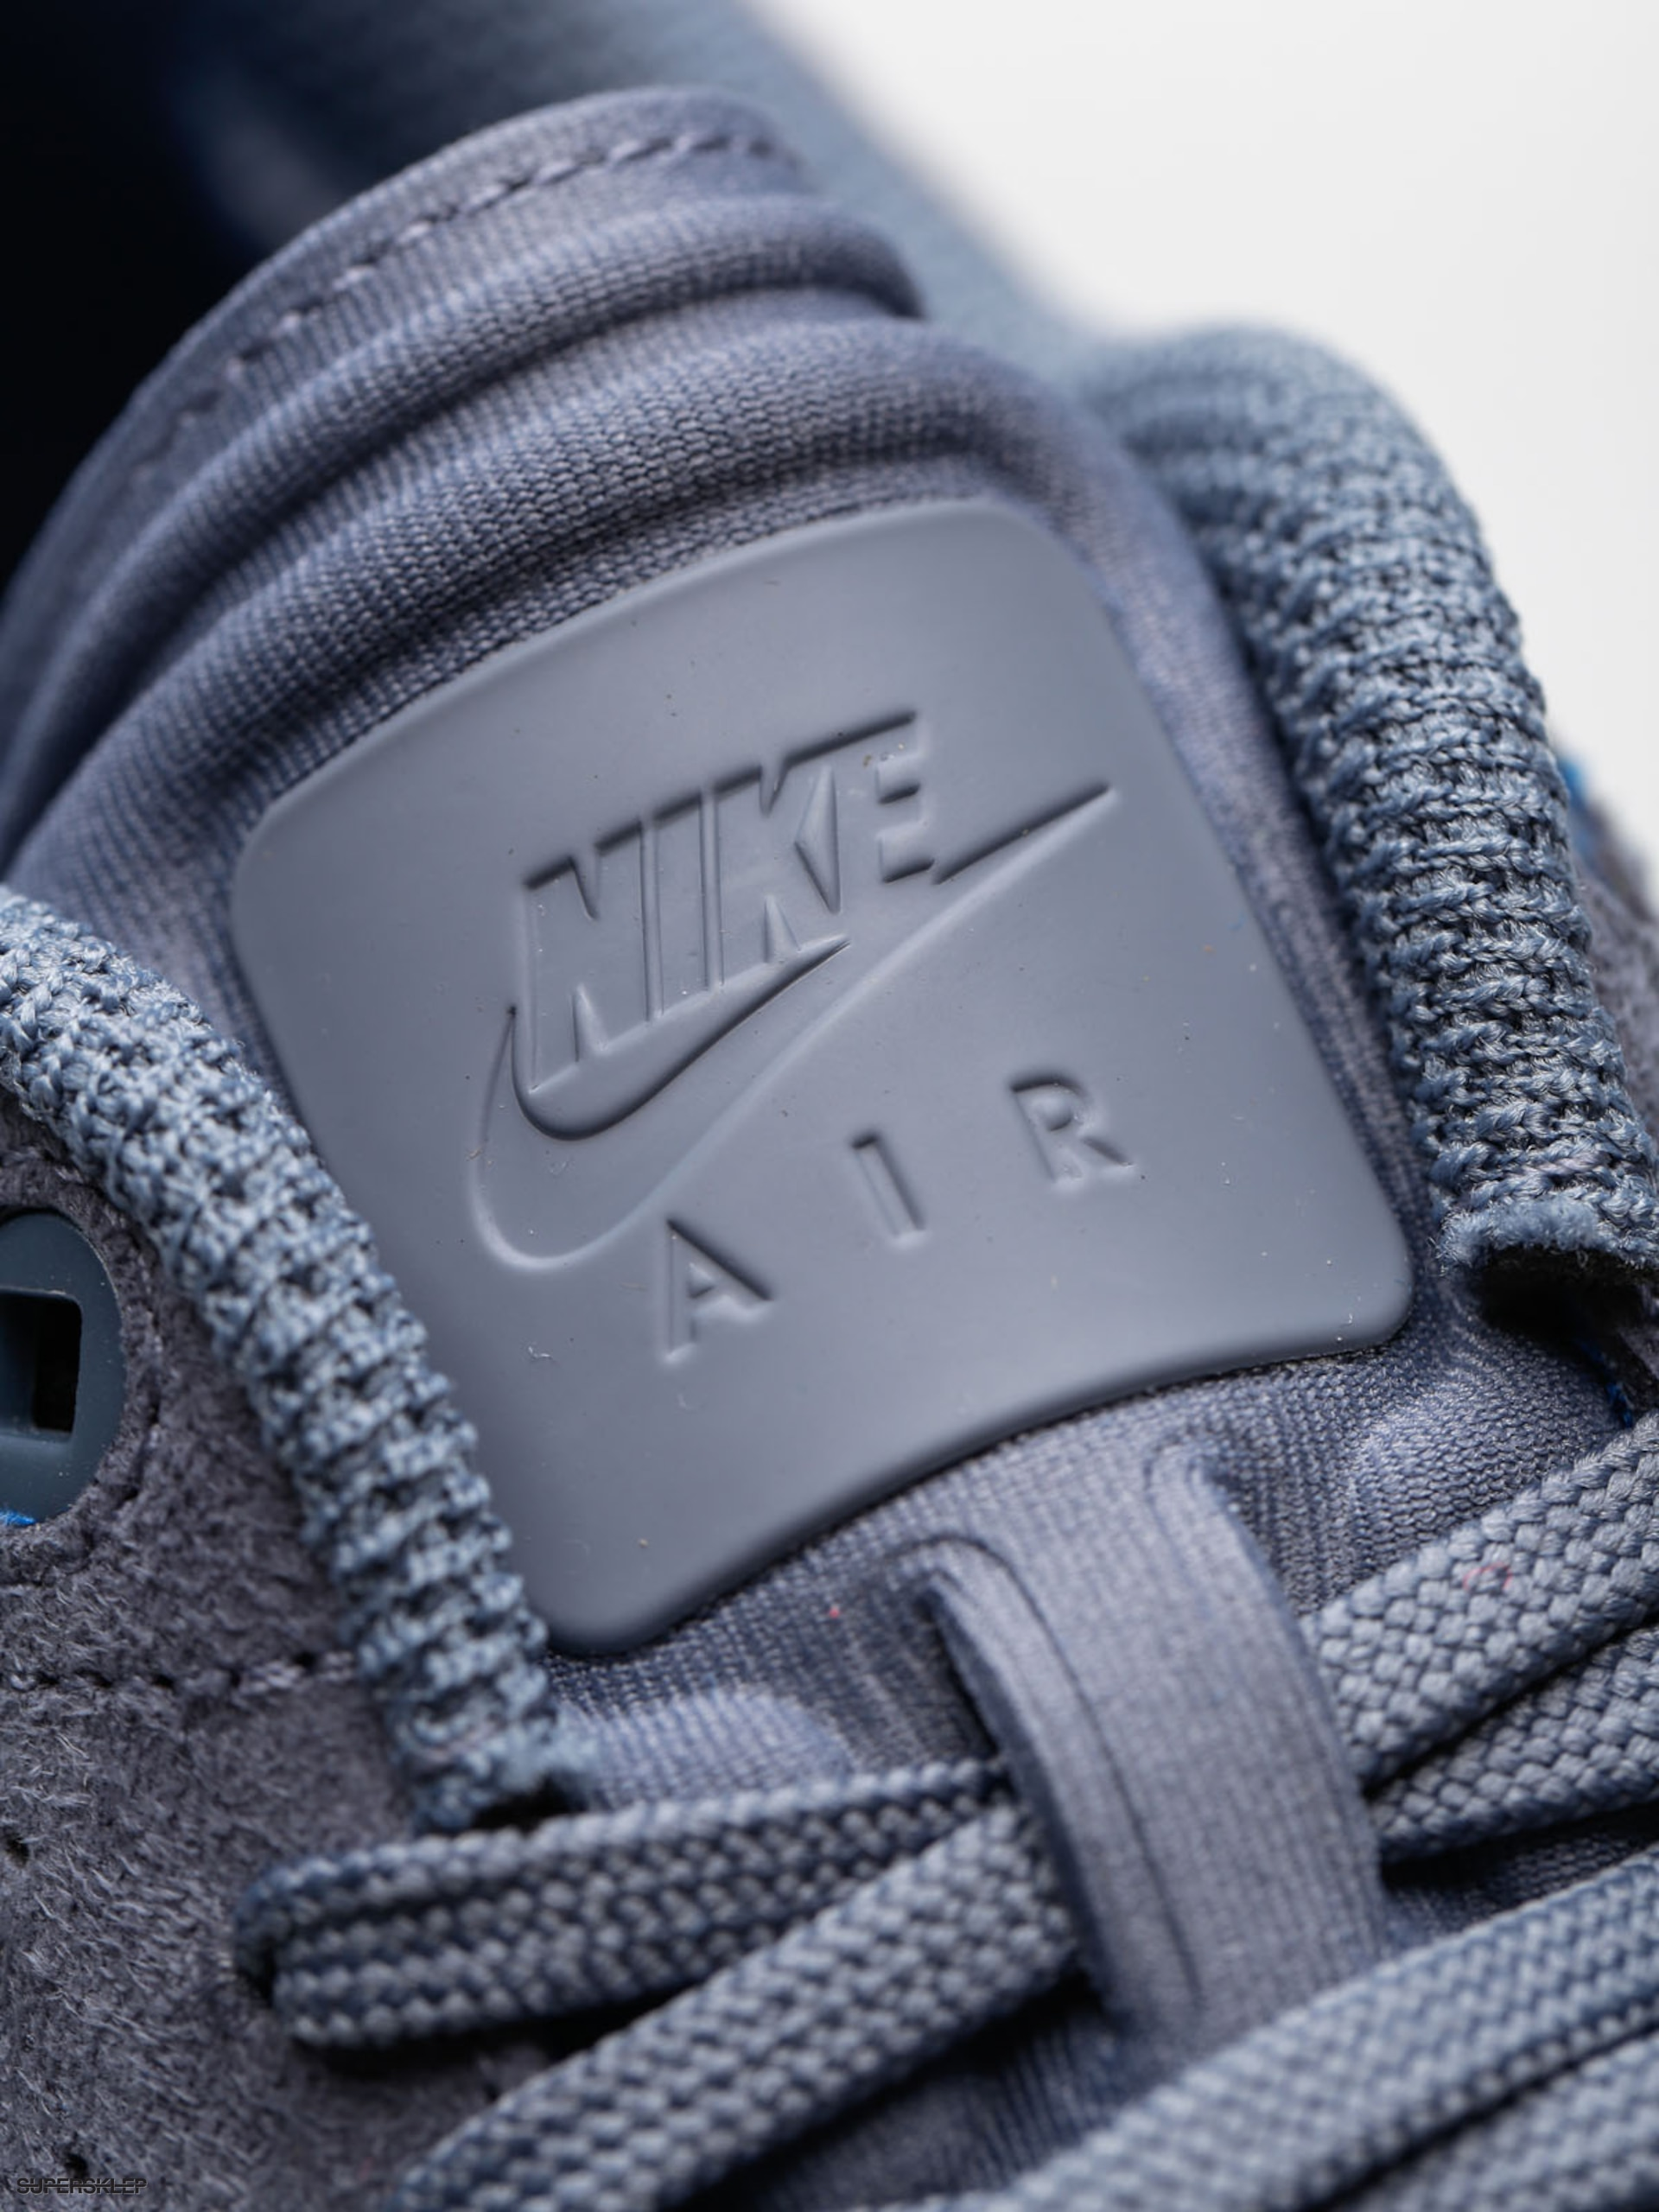 Buty Nike Air Max 1 (Ultra 2.0 Moire armory blue/armory navy blue jay)